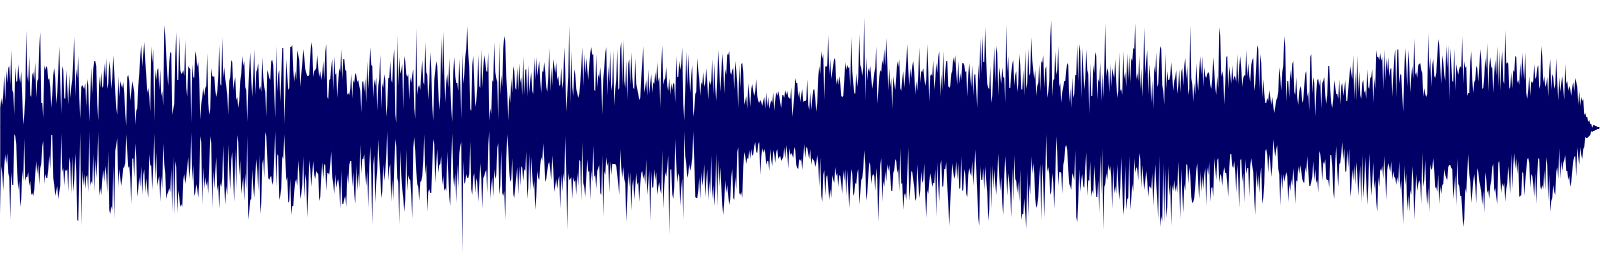 waveform of track #148598